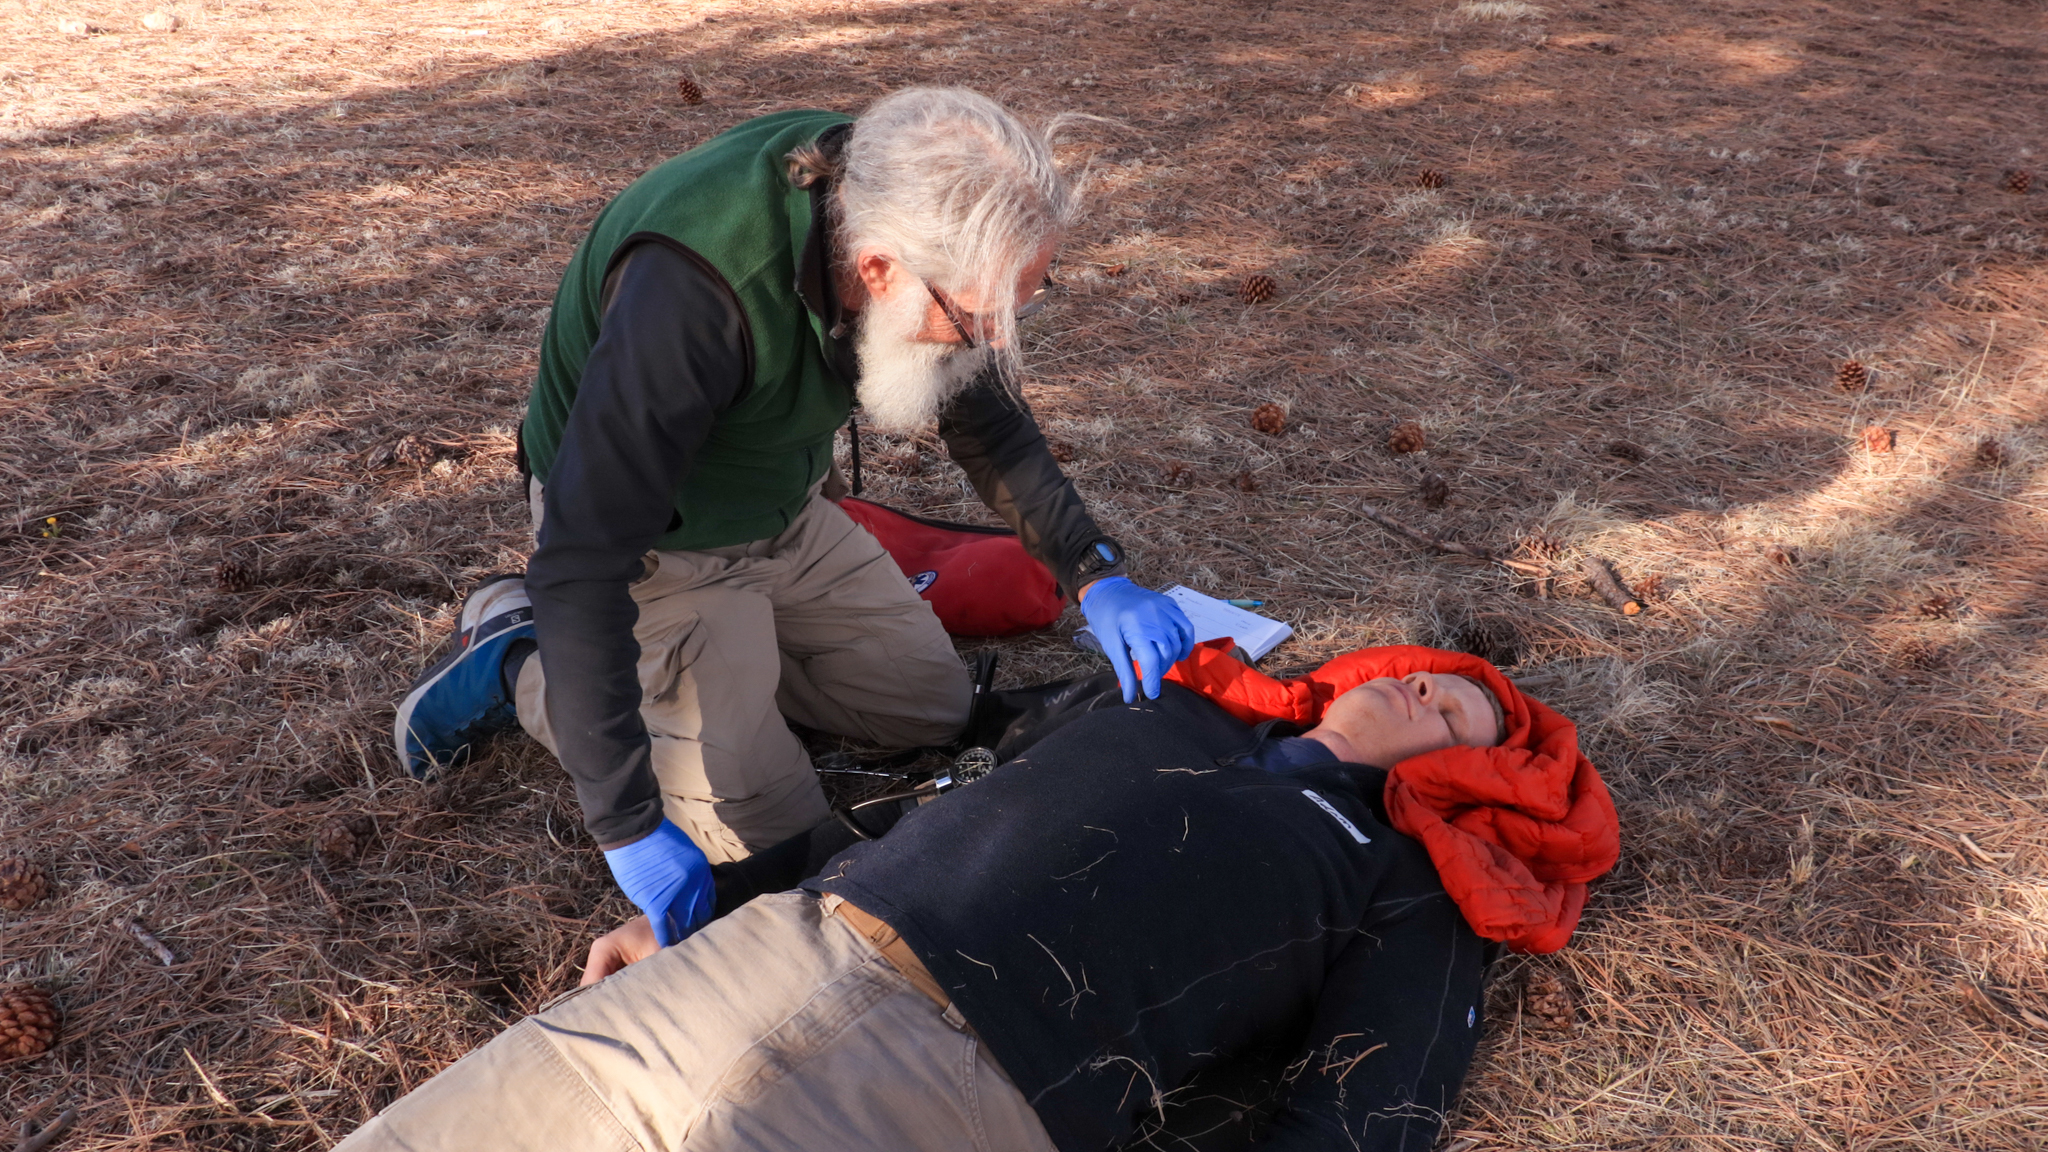 An older man checks the pulse of the an unconscious patient. The patient's neck is stabilized by a coat.